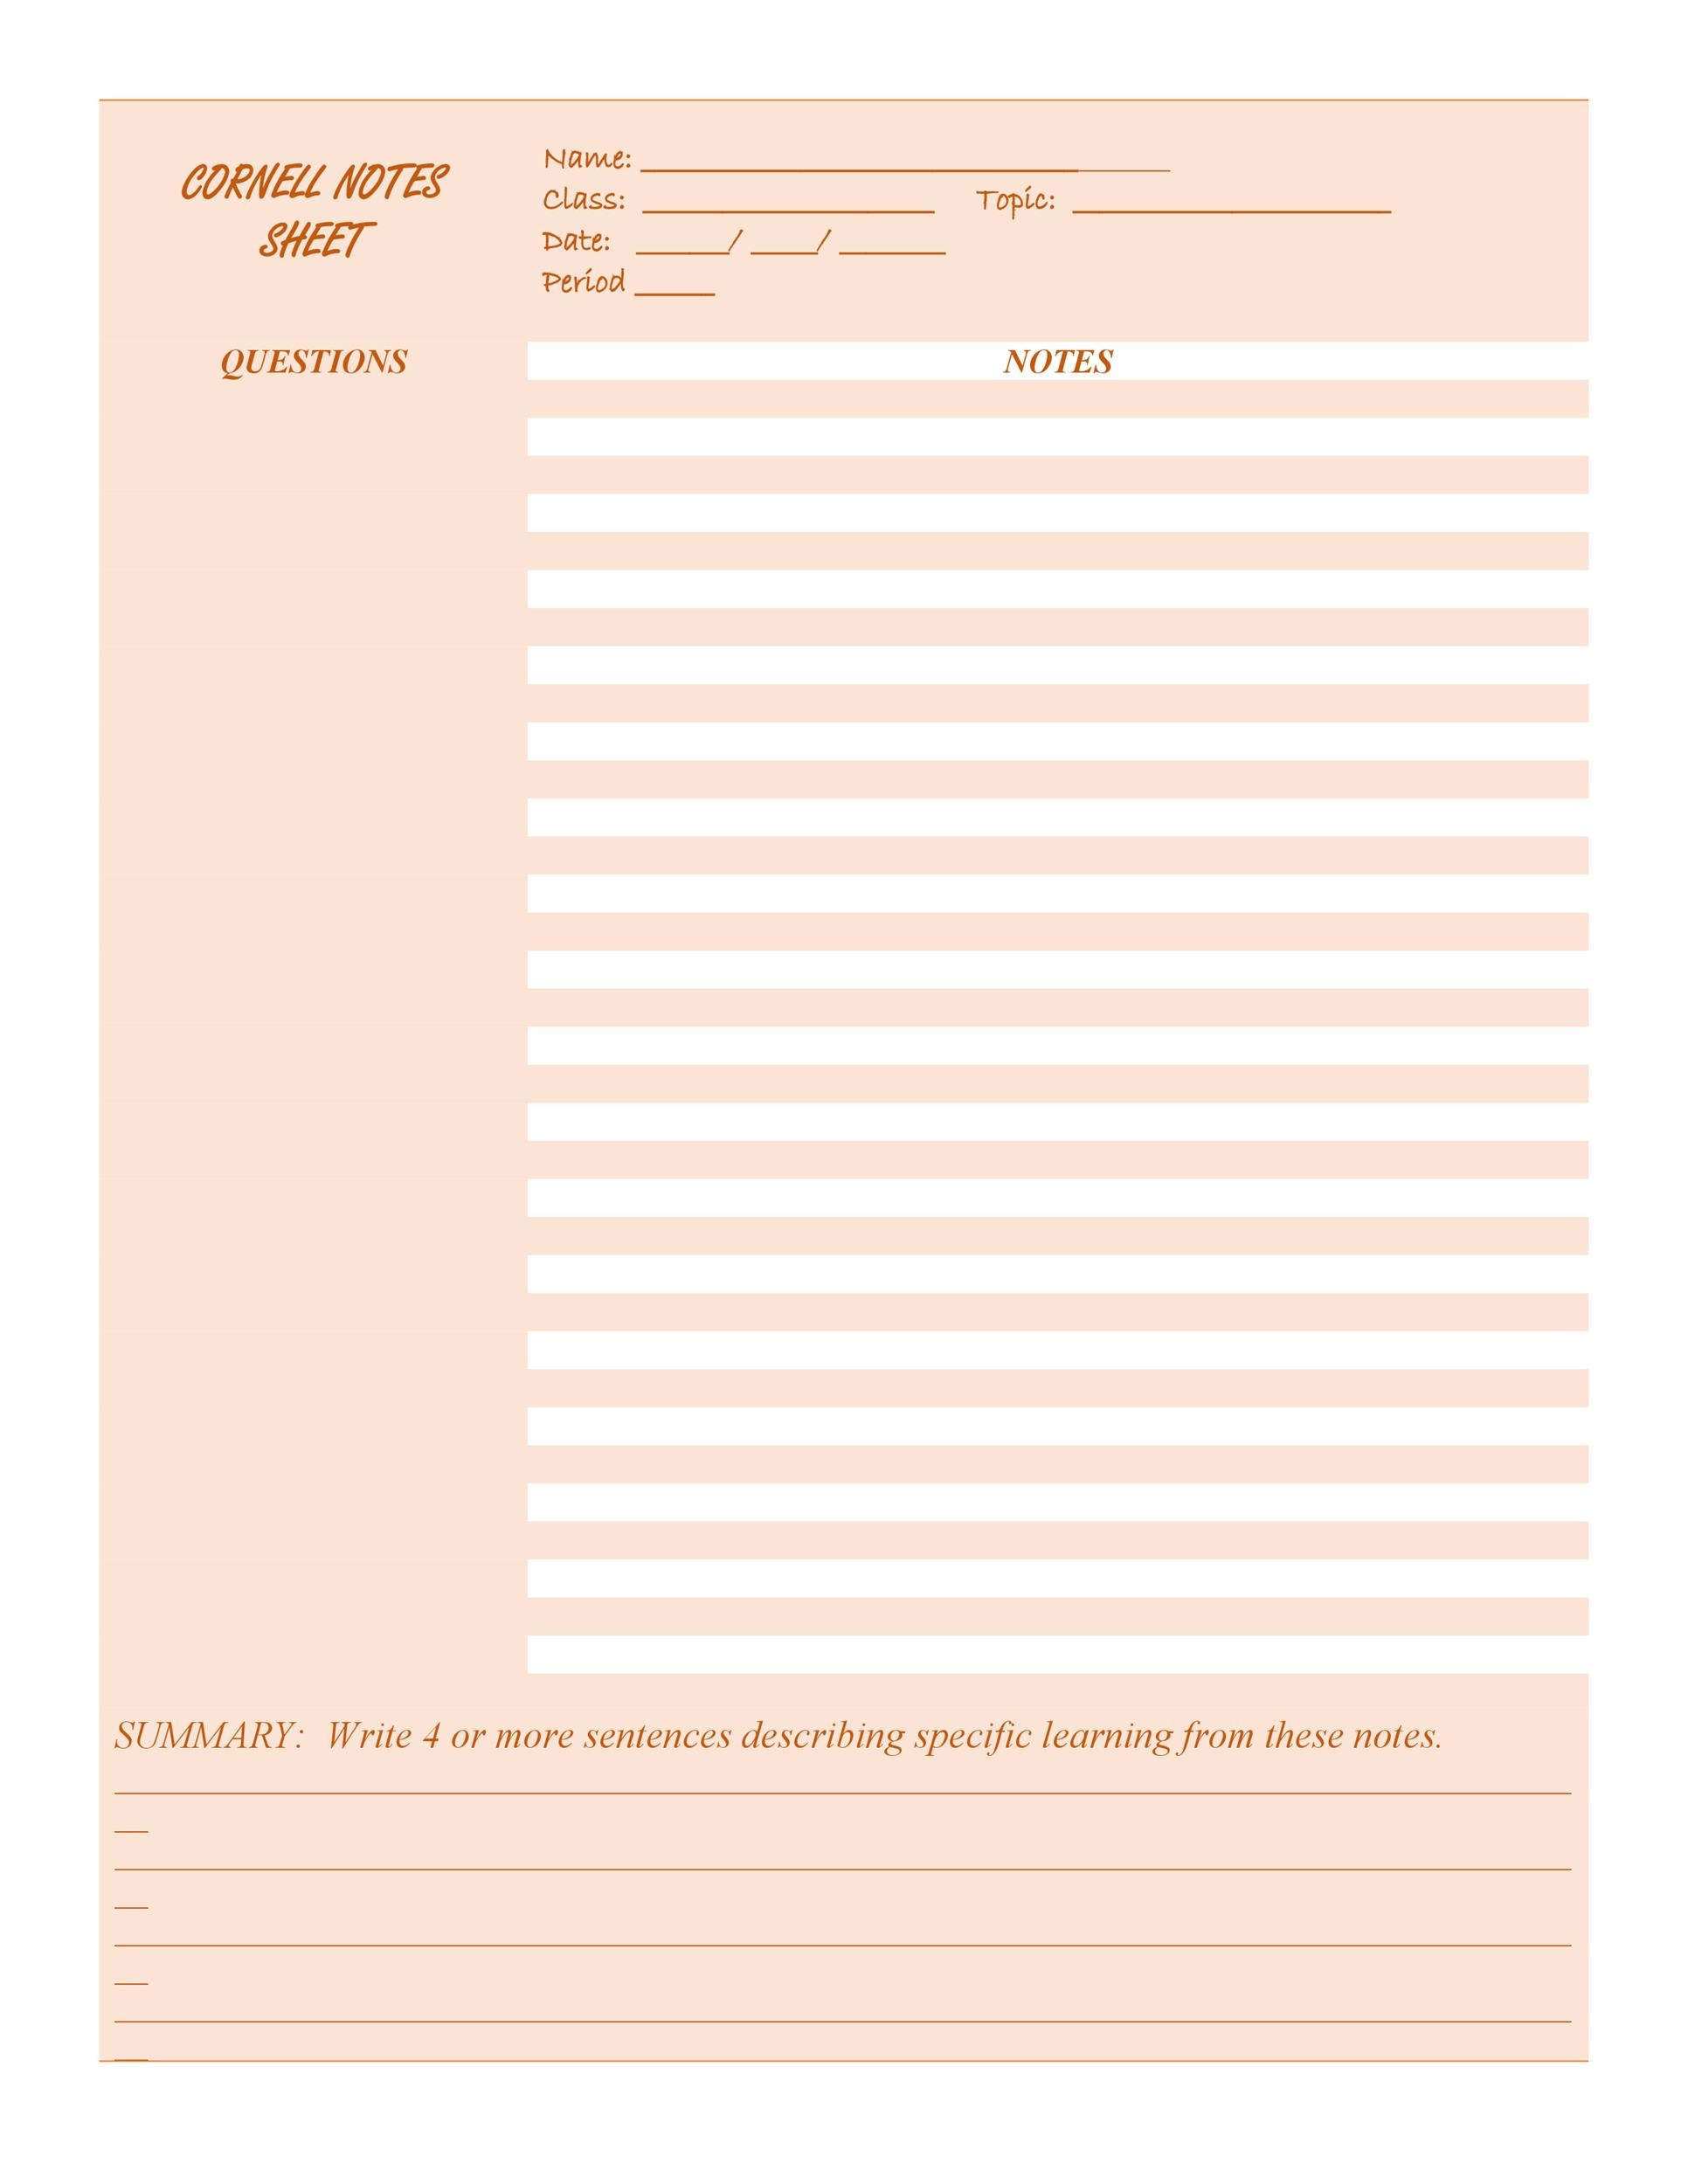 photo about Free Organization Printables for College Students named 36 Cornell Notes Templates Illustrations [Term, PDF] ᐅ